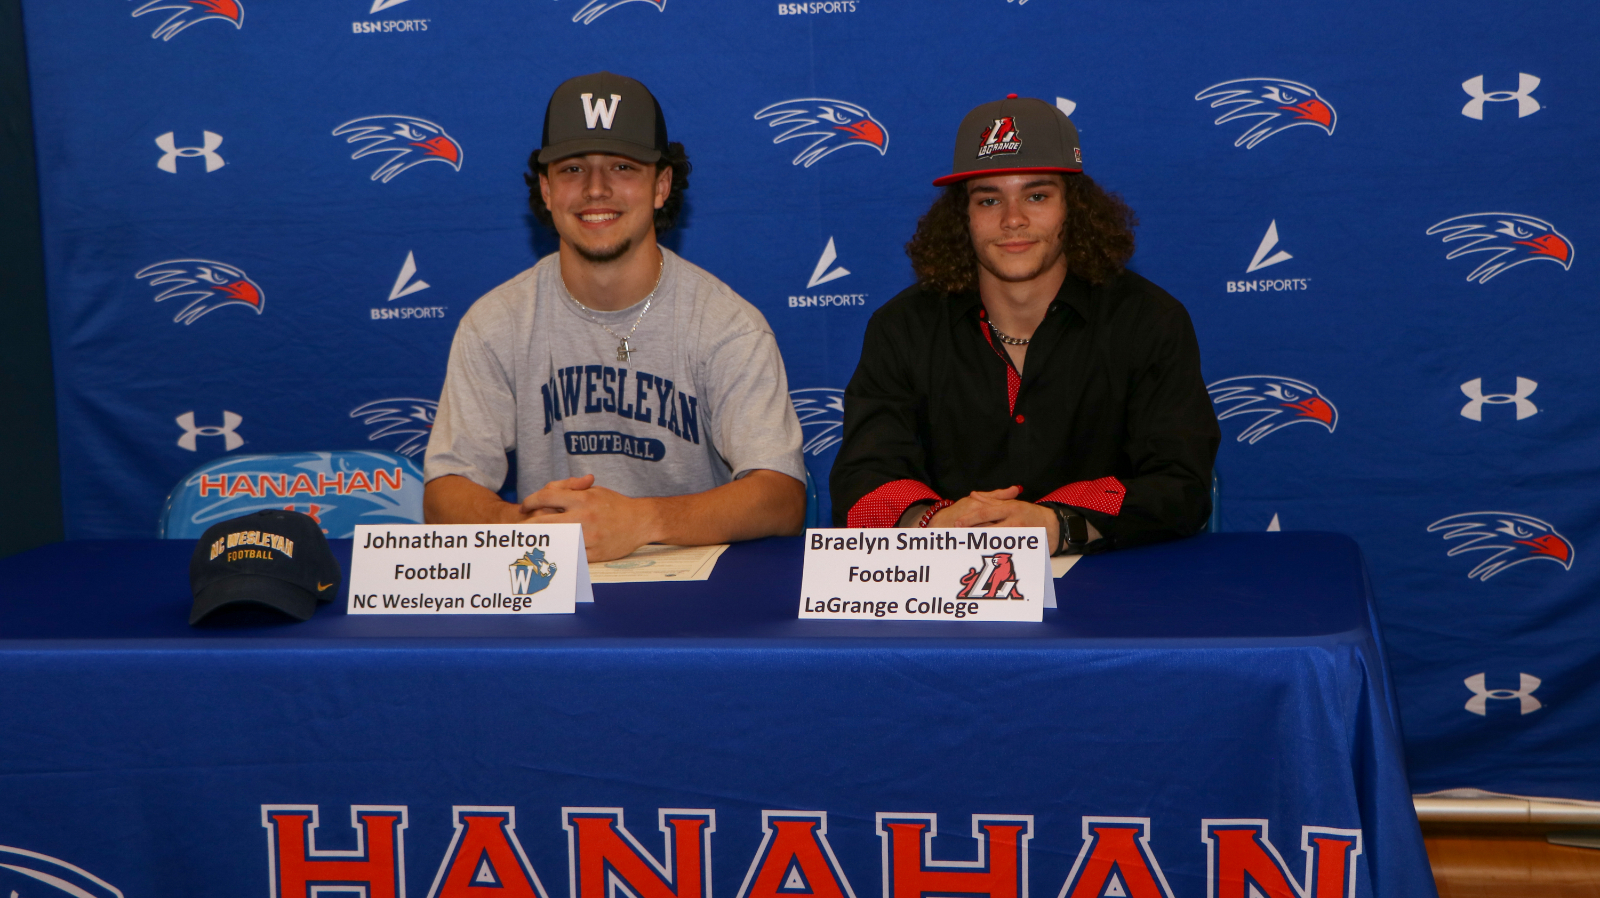 3.11.2021 (PHOTO GALLERY):  Hanahan High School – National Signing Day 3 – Photos by Cyril Samonte